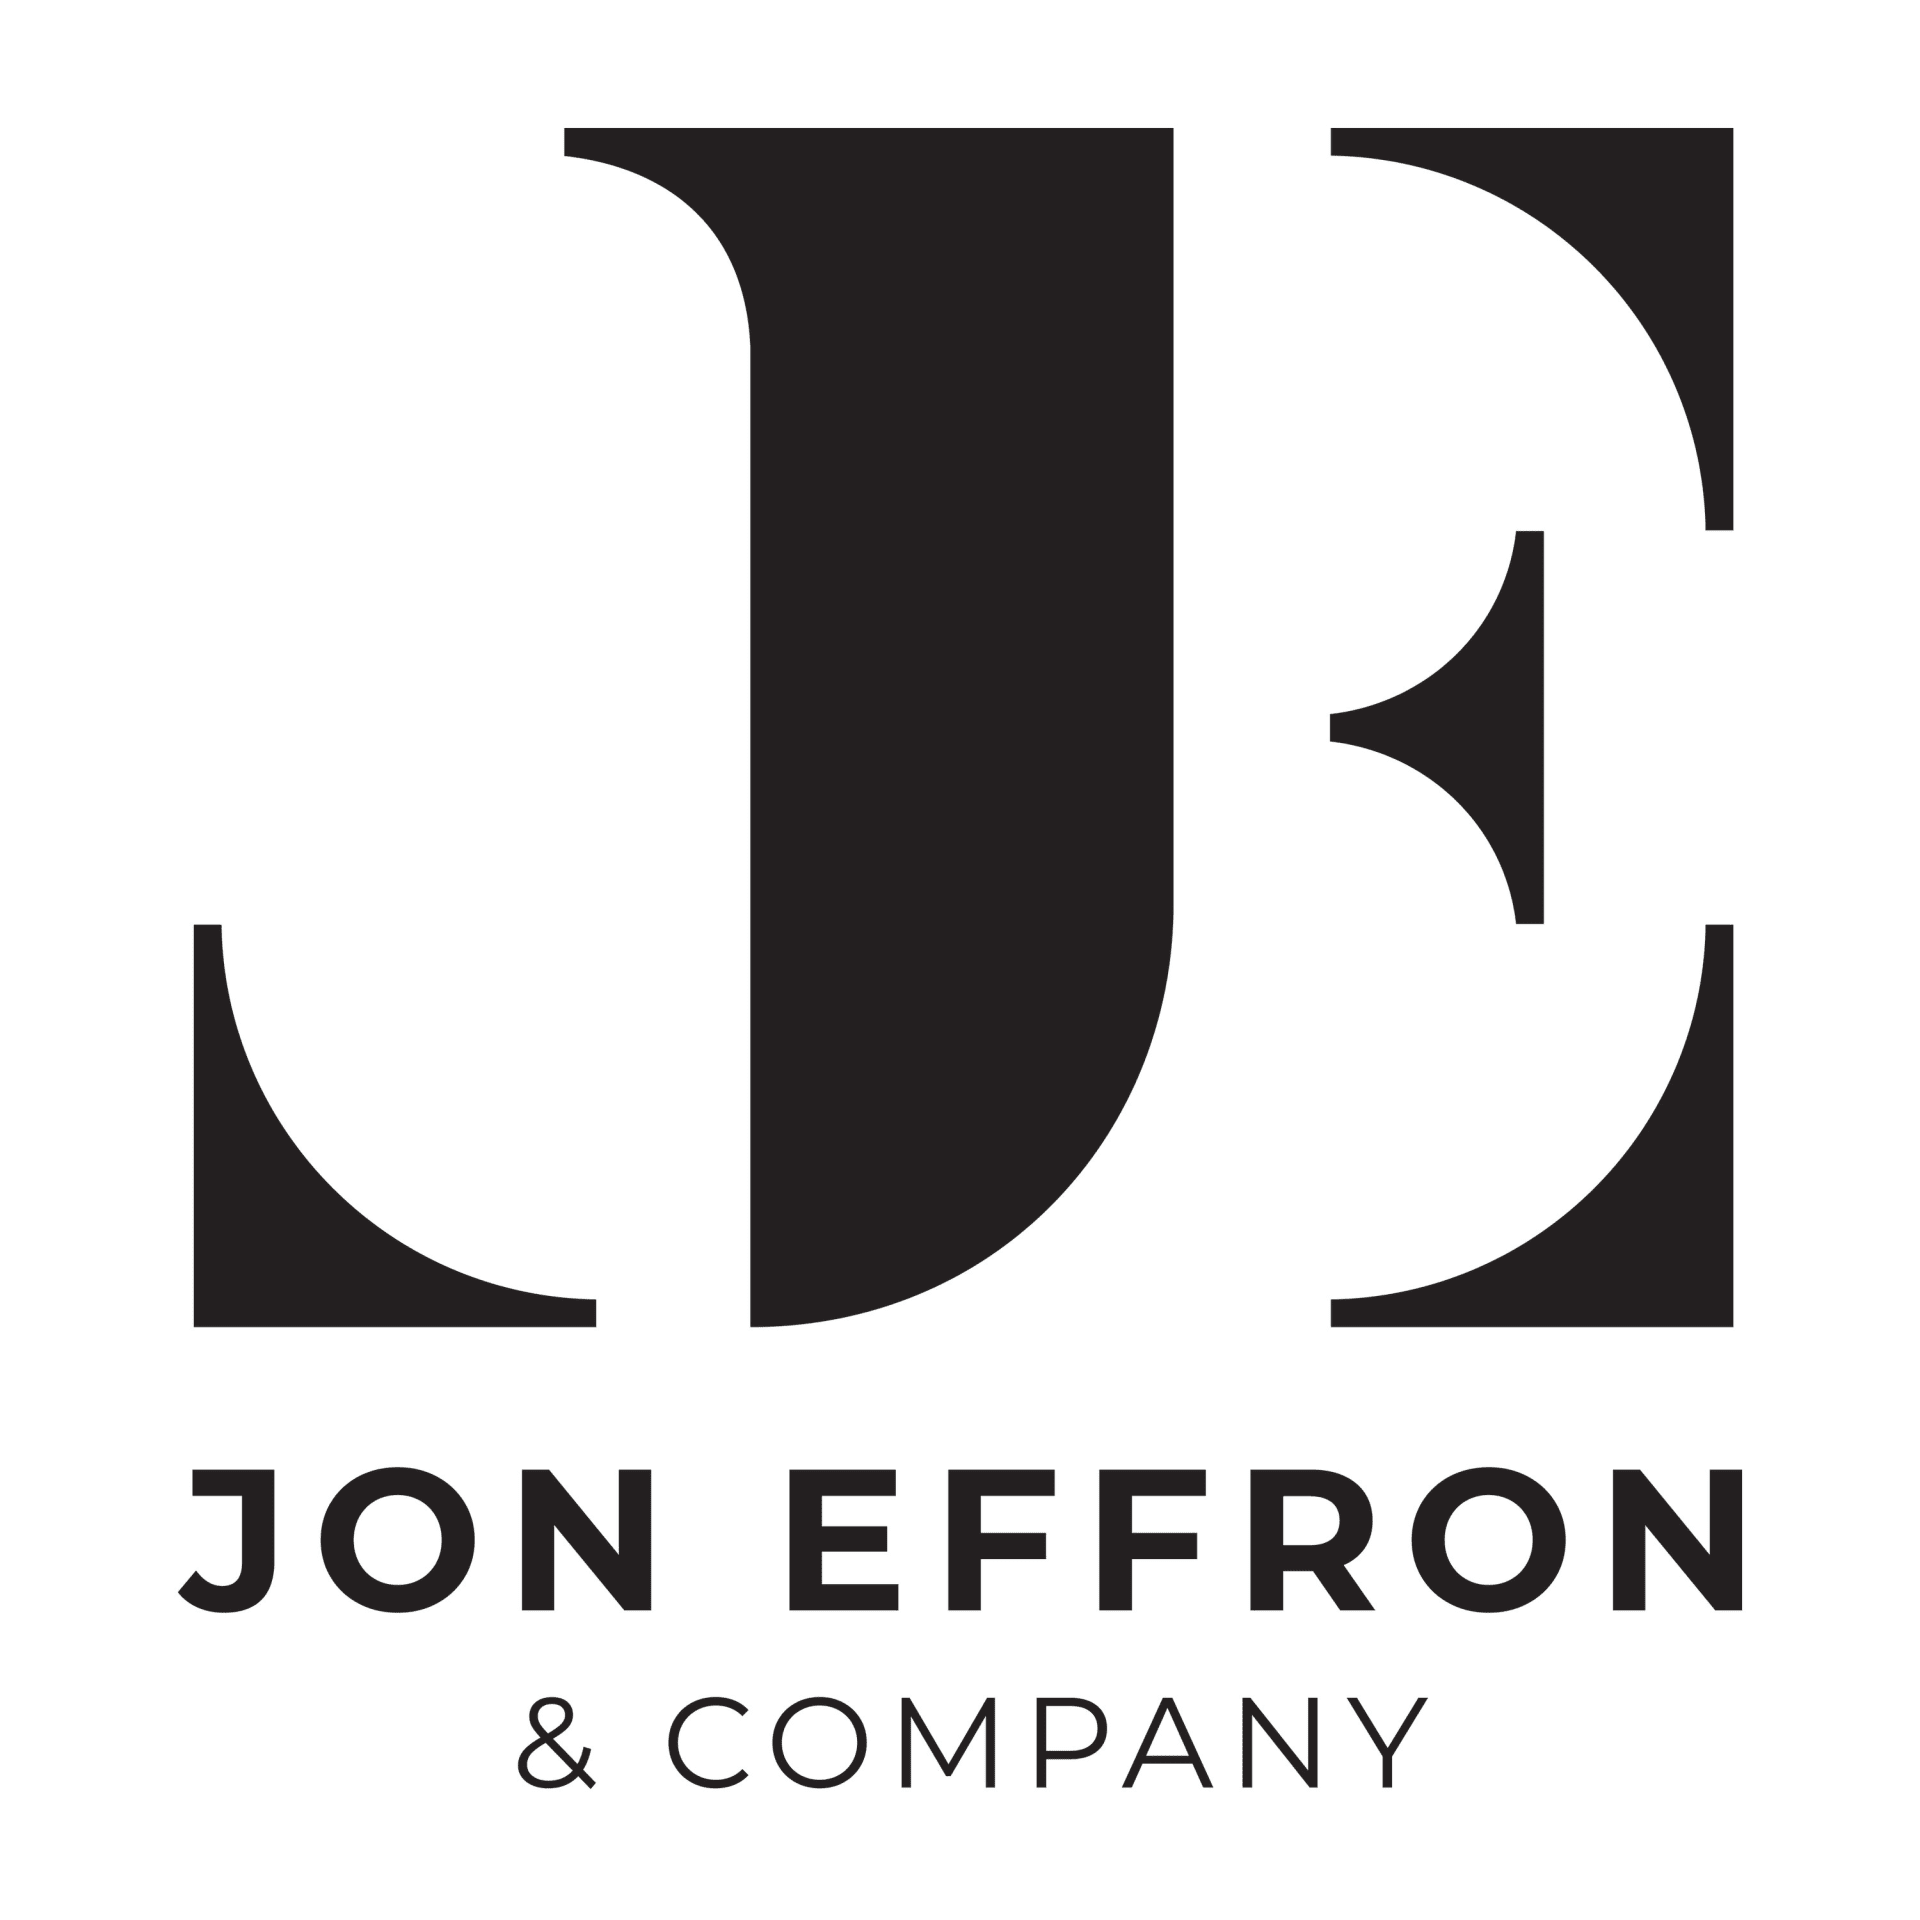 A Is For Atlanta Is Now Jon Effron & Company